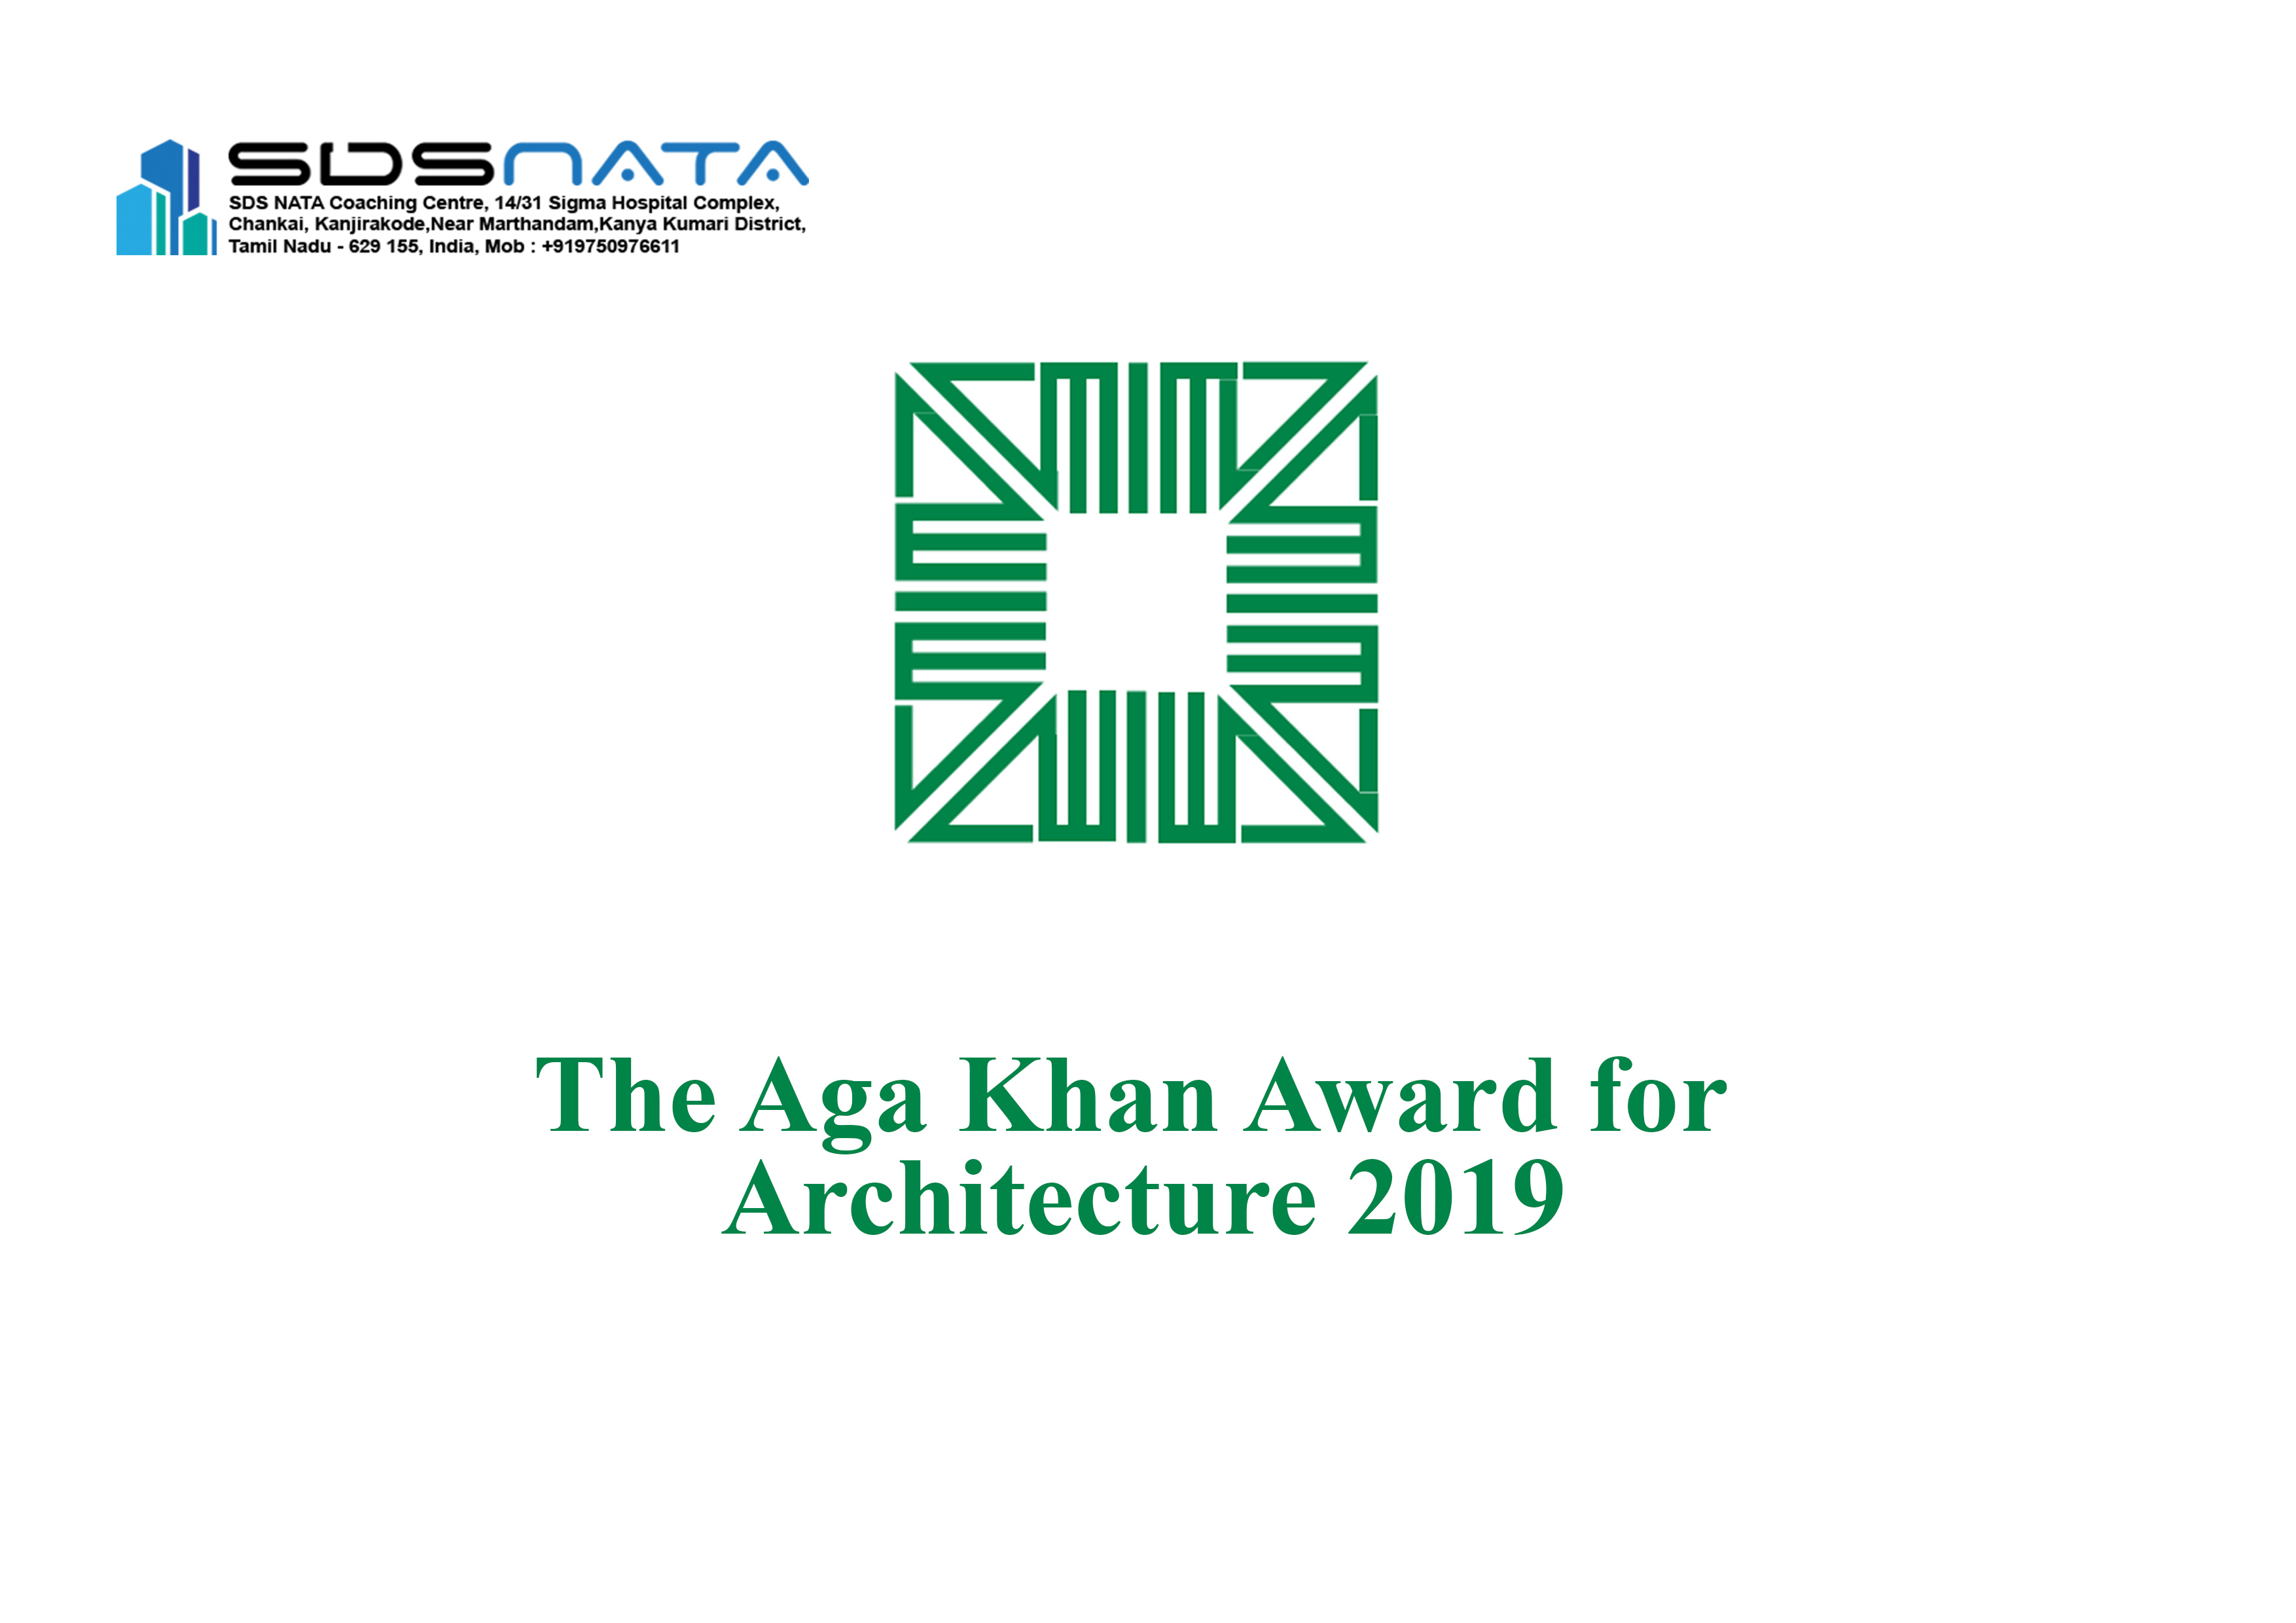 The Aga Khan Award for Architecture 2019